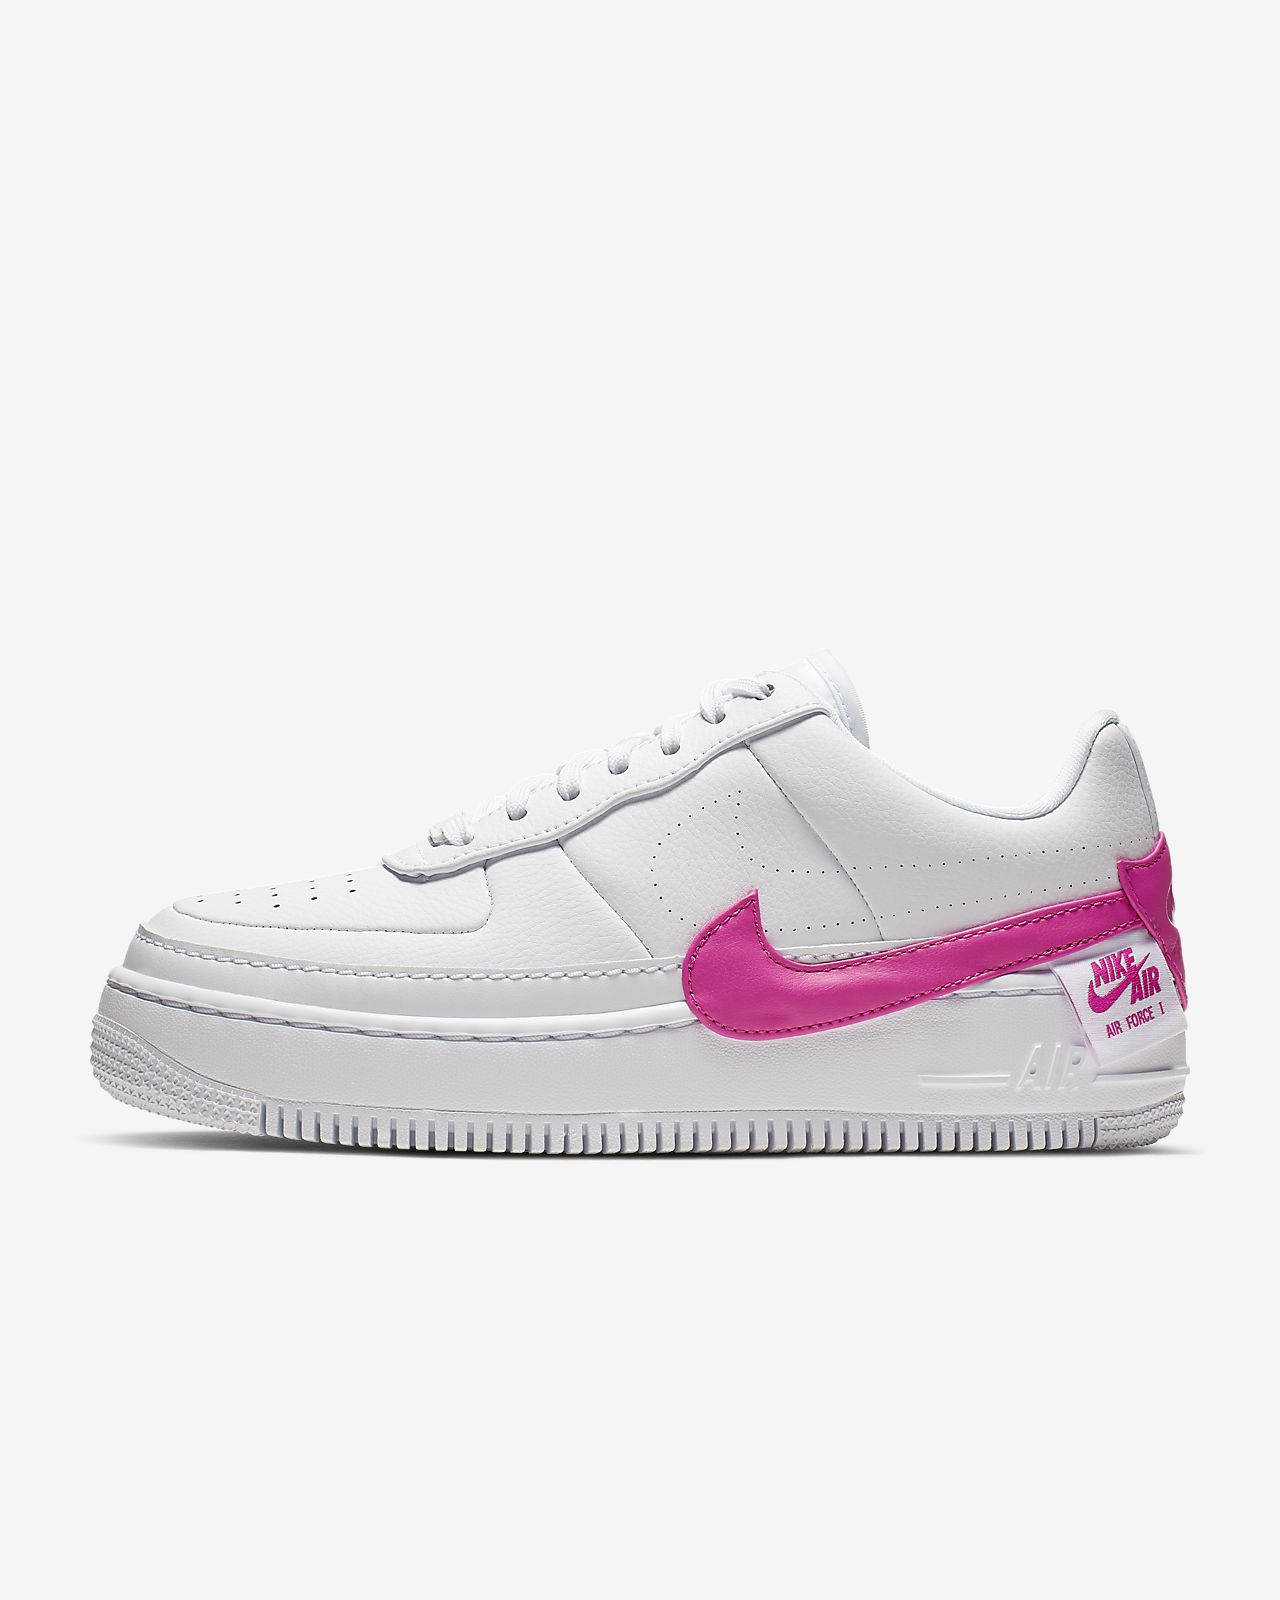 033c285660 Nike Air Force 1 Jester XX Shoe. Nike.com